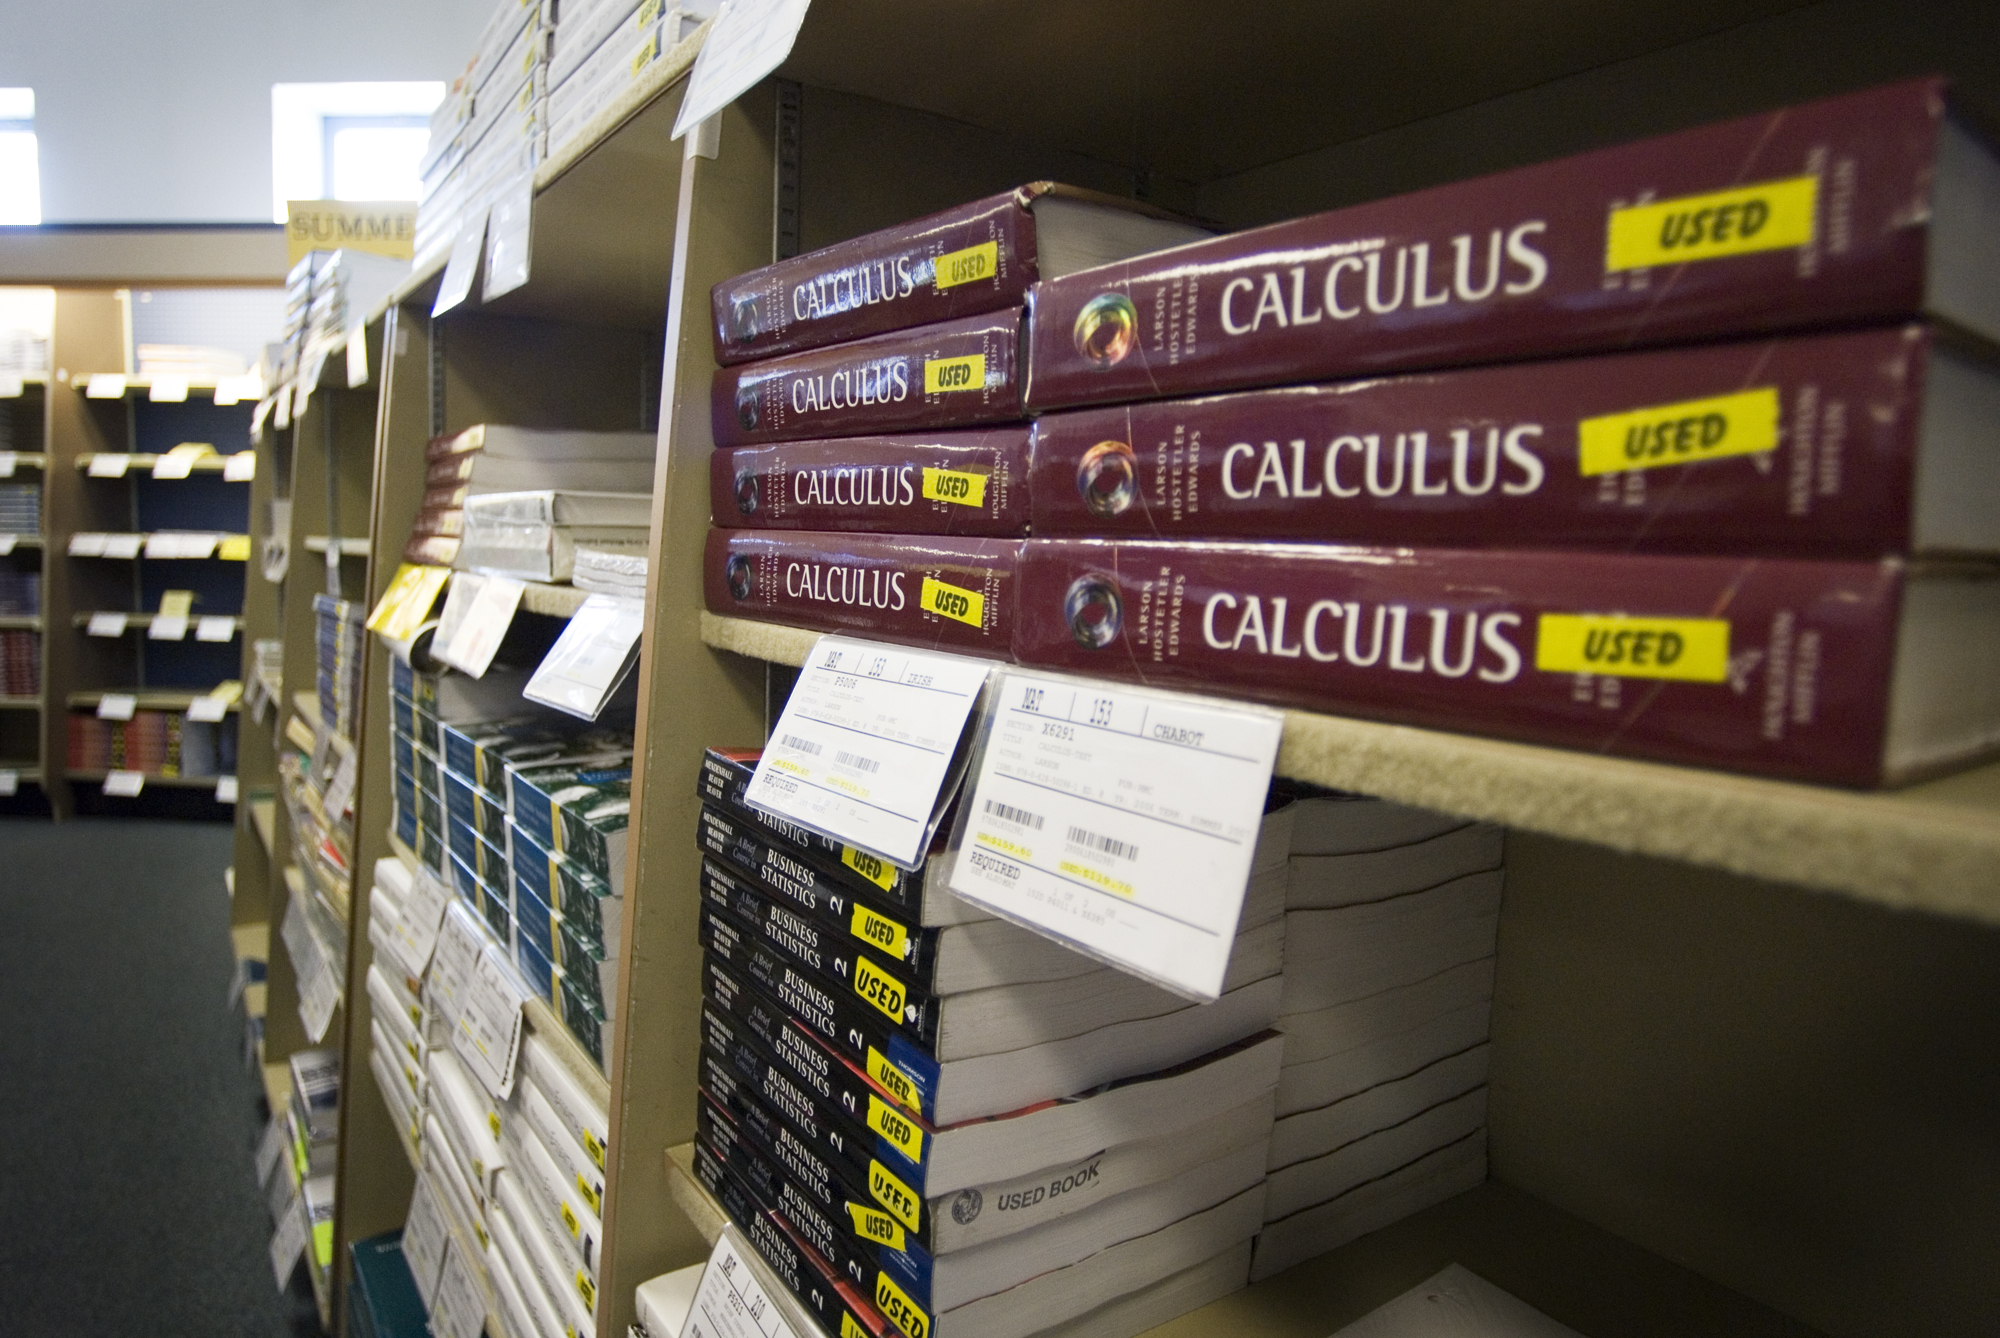 Calculus textbooks on a university bookstore shelf